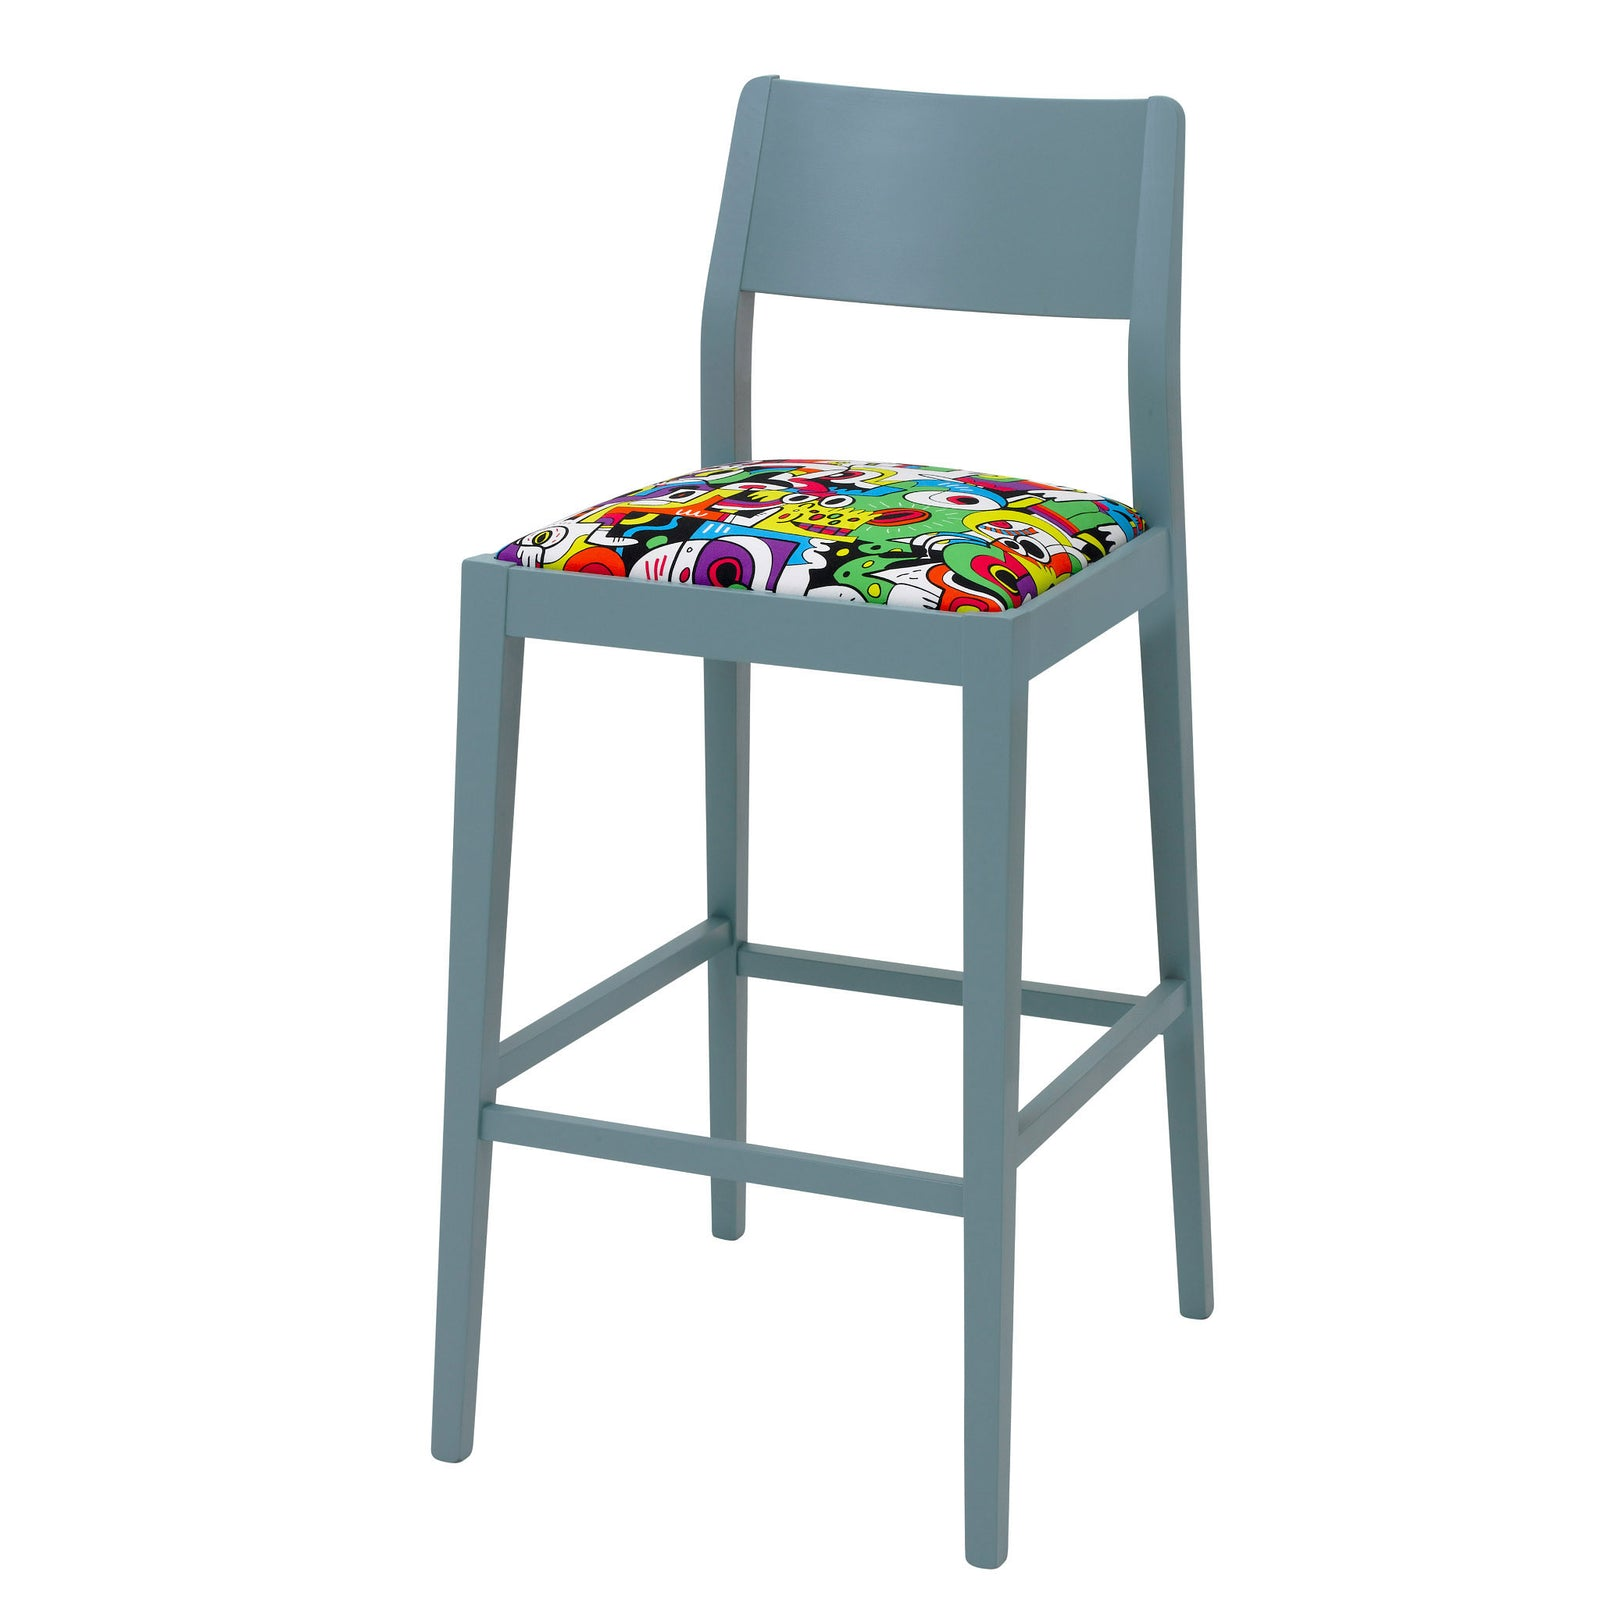 James Barista Bar Stool with Frooty Tooty Tropical Fabric.